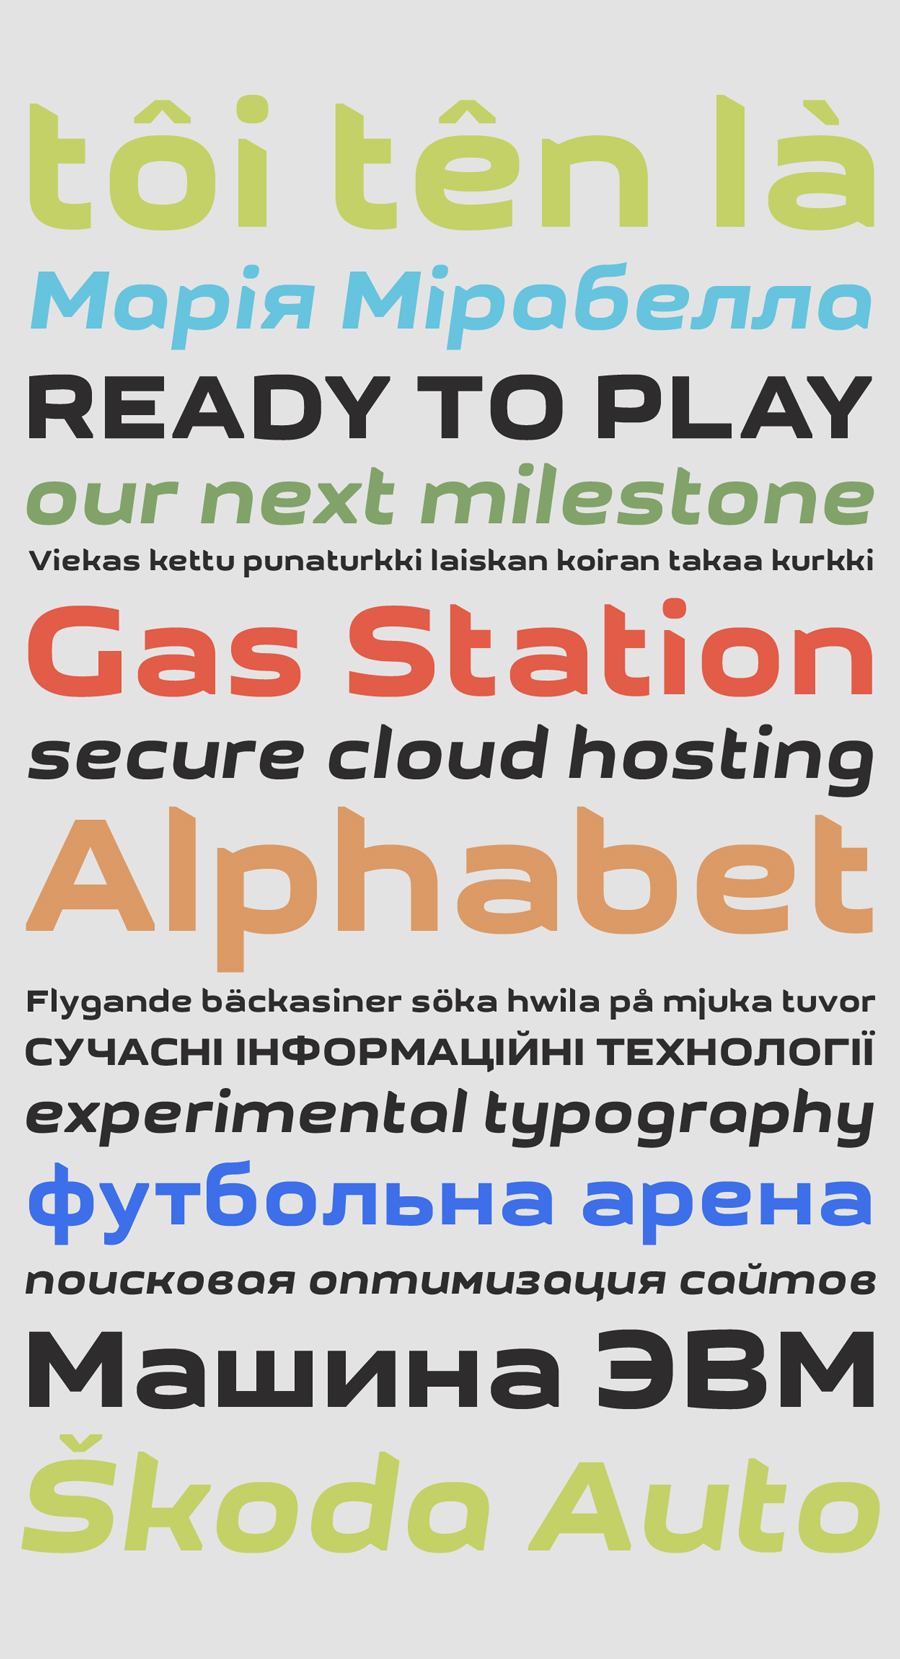 05_GetVoIP-Grotesque-Free-Font